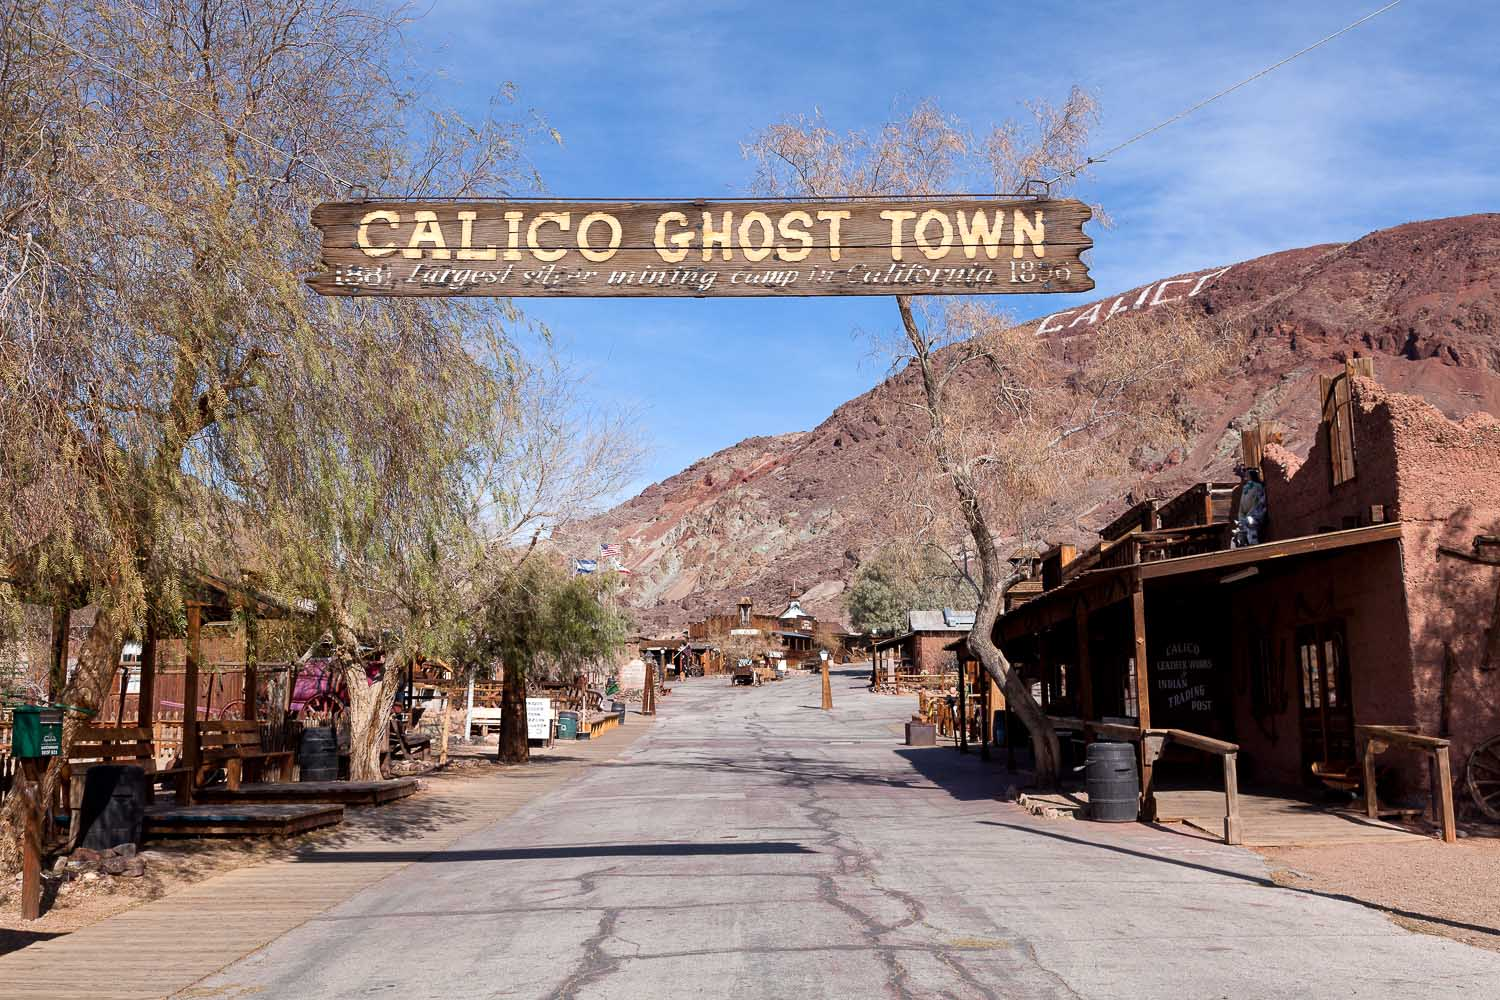 Sunday Road Trip - Calico Ghost Town Revisited